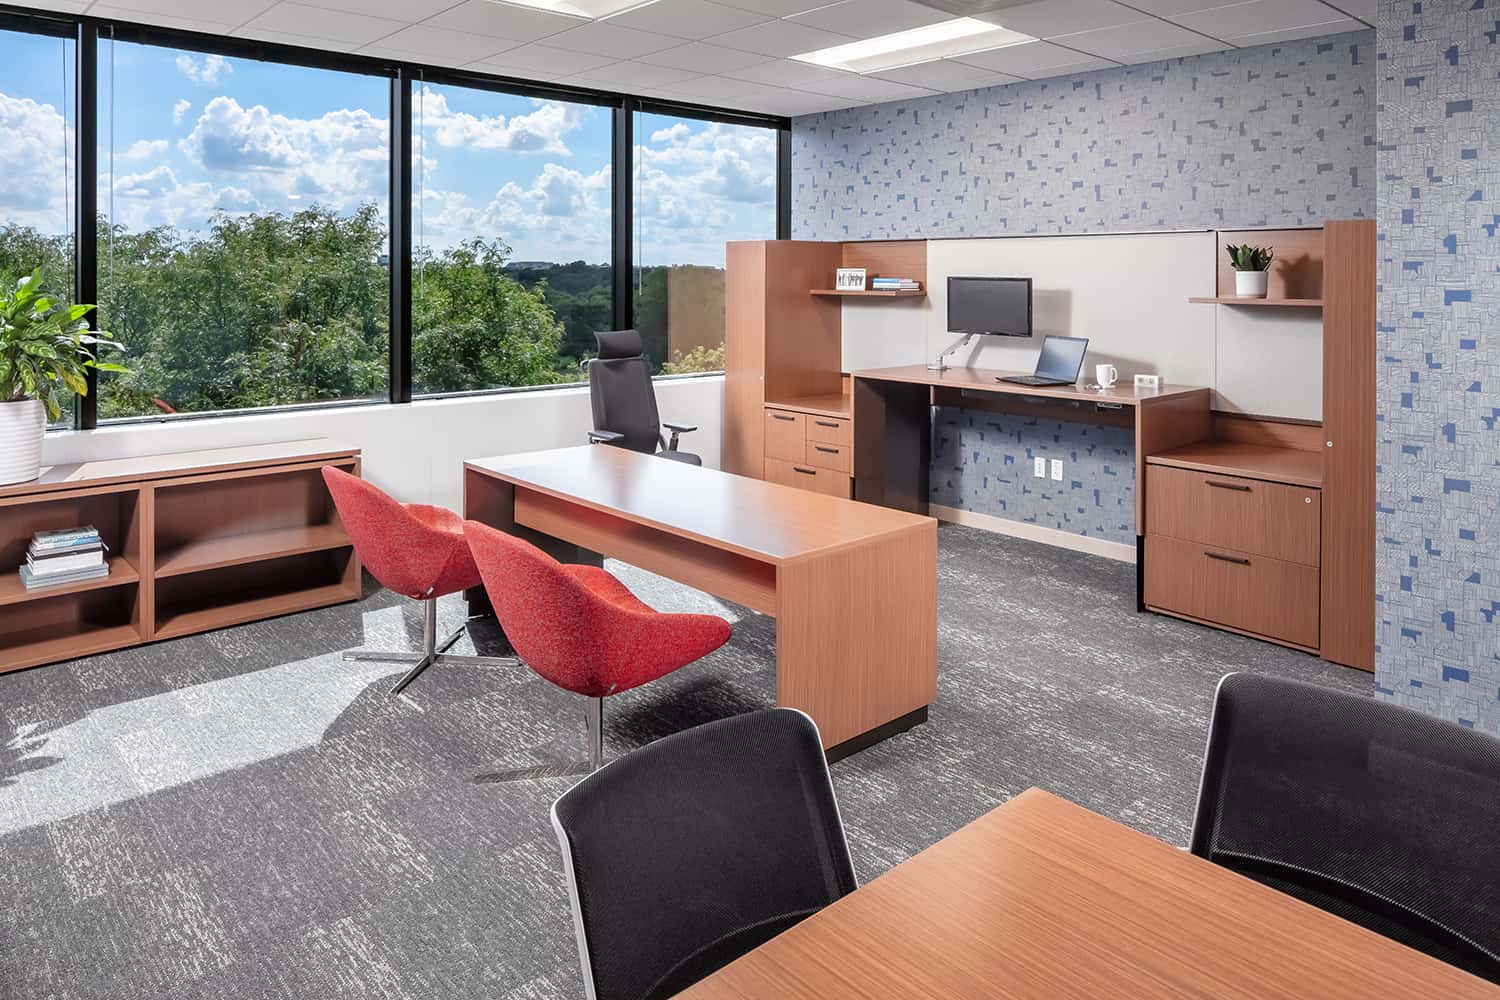 Private office with expansive window views and options for touchdown seating.